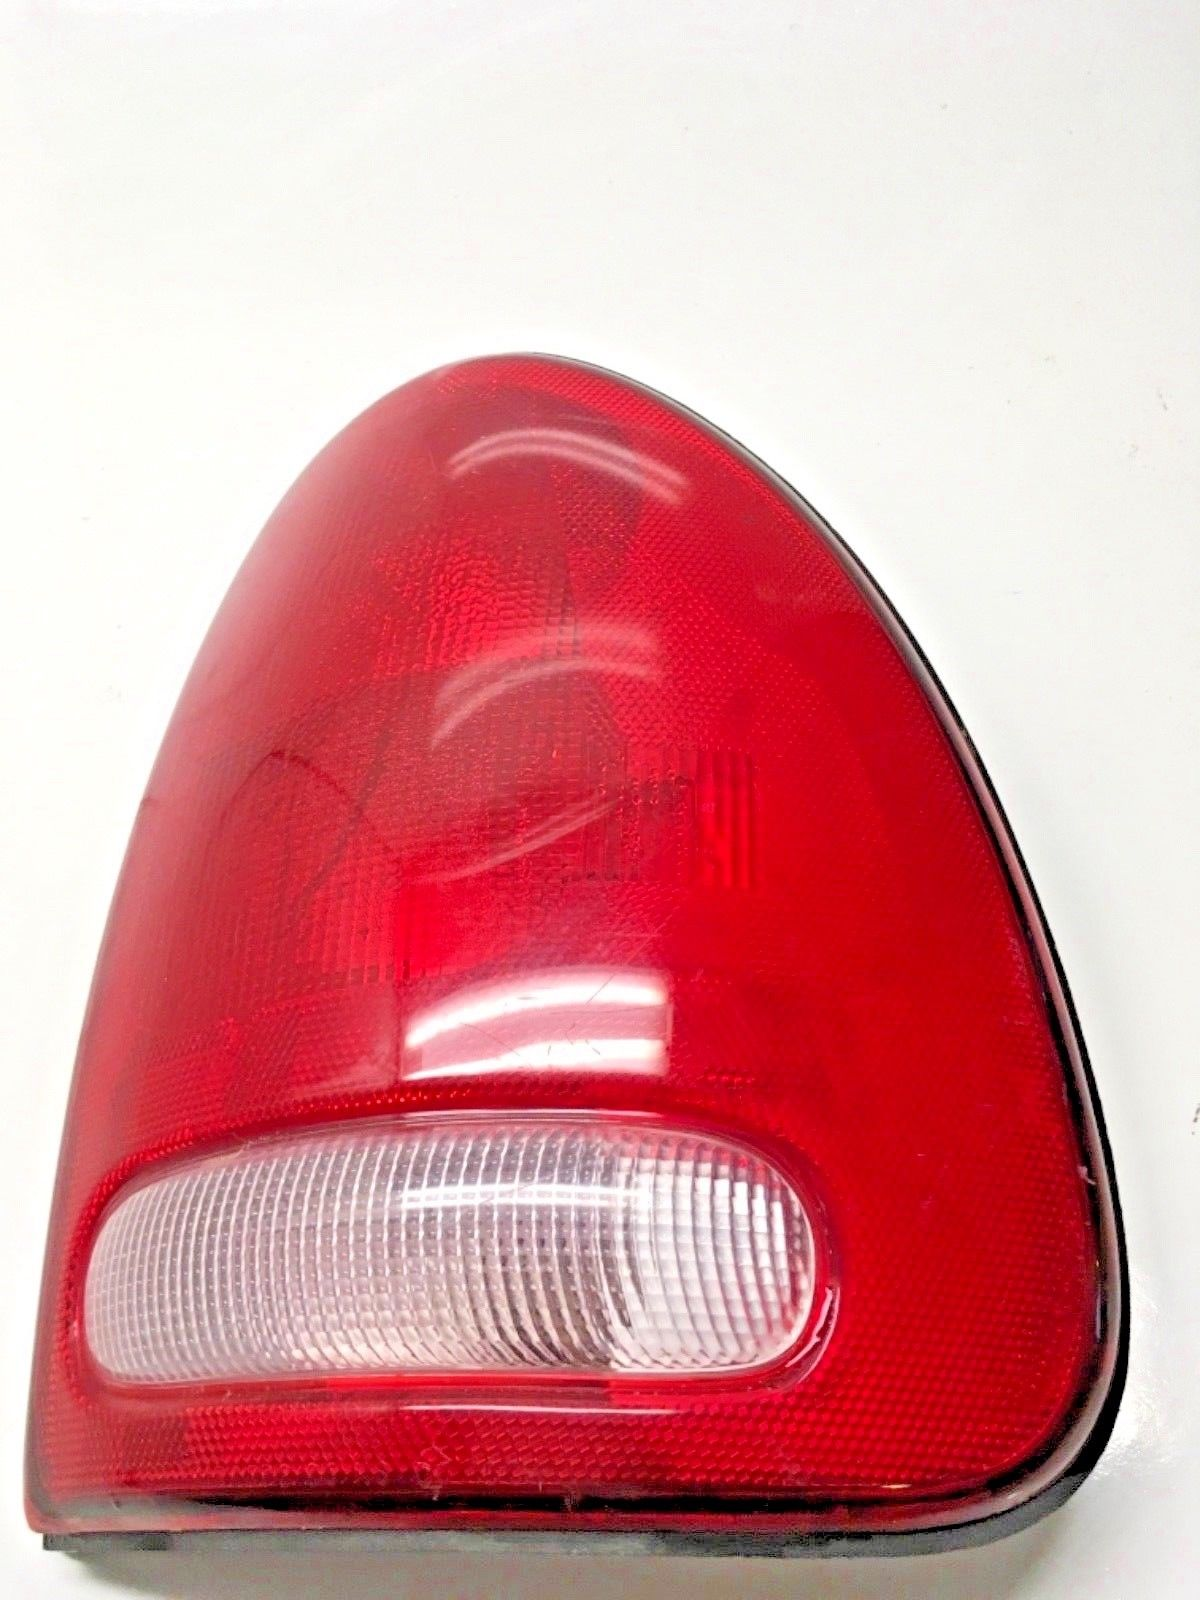 1996-2000 CARAVAN/VOYAGER/1998-2003 DODGE DURANGO BRAKE TAIL LIGHT RIGHT RH Does not apply